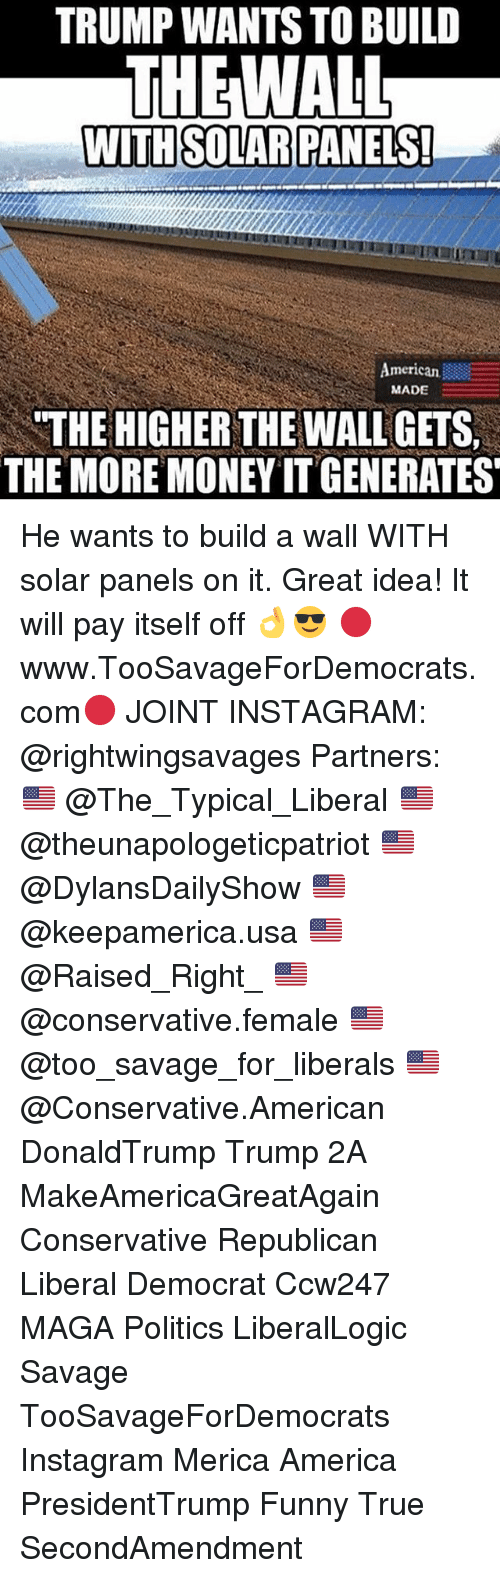 """America, Funny, and Instagram: TRUMP WANTS TO BUILD  THEWALL  American  MADE  """"THE HIGHER THE WALL GETS  THE MORE MONEY IT GENERATES He wants to build a wall WITH solar panels on it. Great idea! It will pay itself off 👌😎 🔴www.TooSavageForDemocrats.com🔴 JOINT INSTAGRAM: @rightwingsavages Partners: 🇺🇸 @The_Typical_Liberal 🇺🇸 @theunapologeticpatriot 🇺🇸 @DylansDailyShow 🇺🇸 @keepamerica.usa 🇺🇸@Raised_Right_ 🇺🇸@conservative.female 🇺🇸 @too_savage_for_liberals 🇺🇸 @Conservative.American DonaldTrump Trump 2A MakeAmericaGreatAgain Conservative Republican Liberal Democrat Ccw247 MAGA Politics LiberalLogic Savage TooSavageForDemocrats Instagram Merica America PresidentTrump Funny True SecondAmendment"""